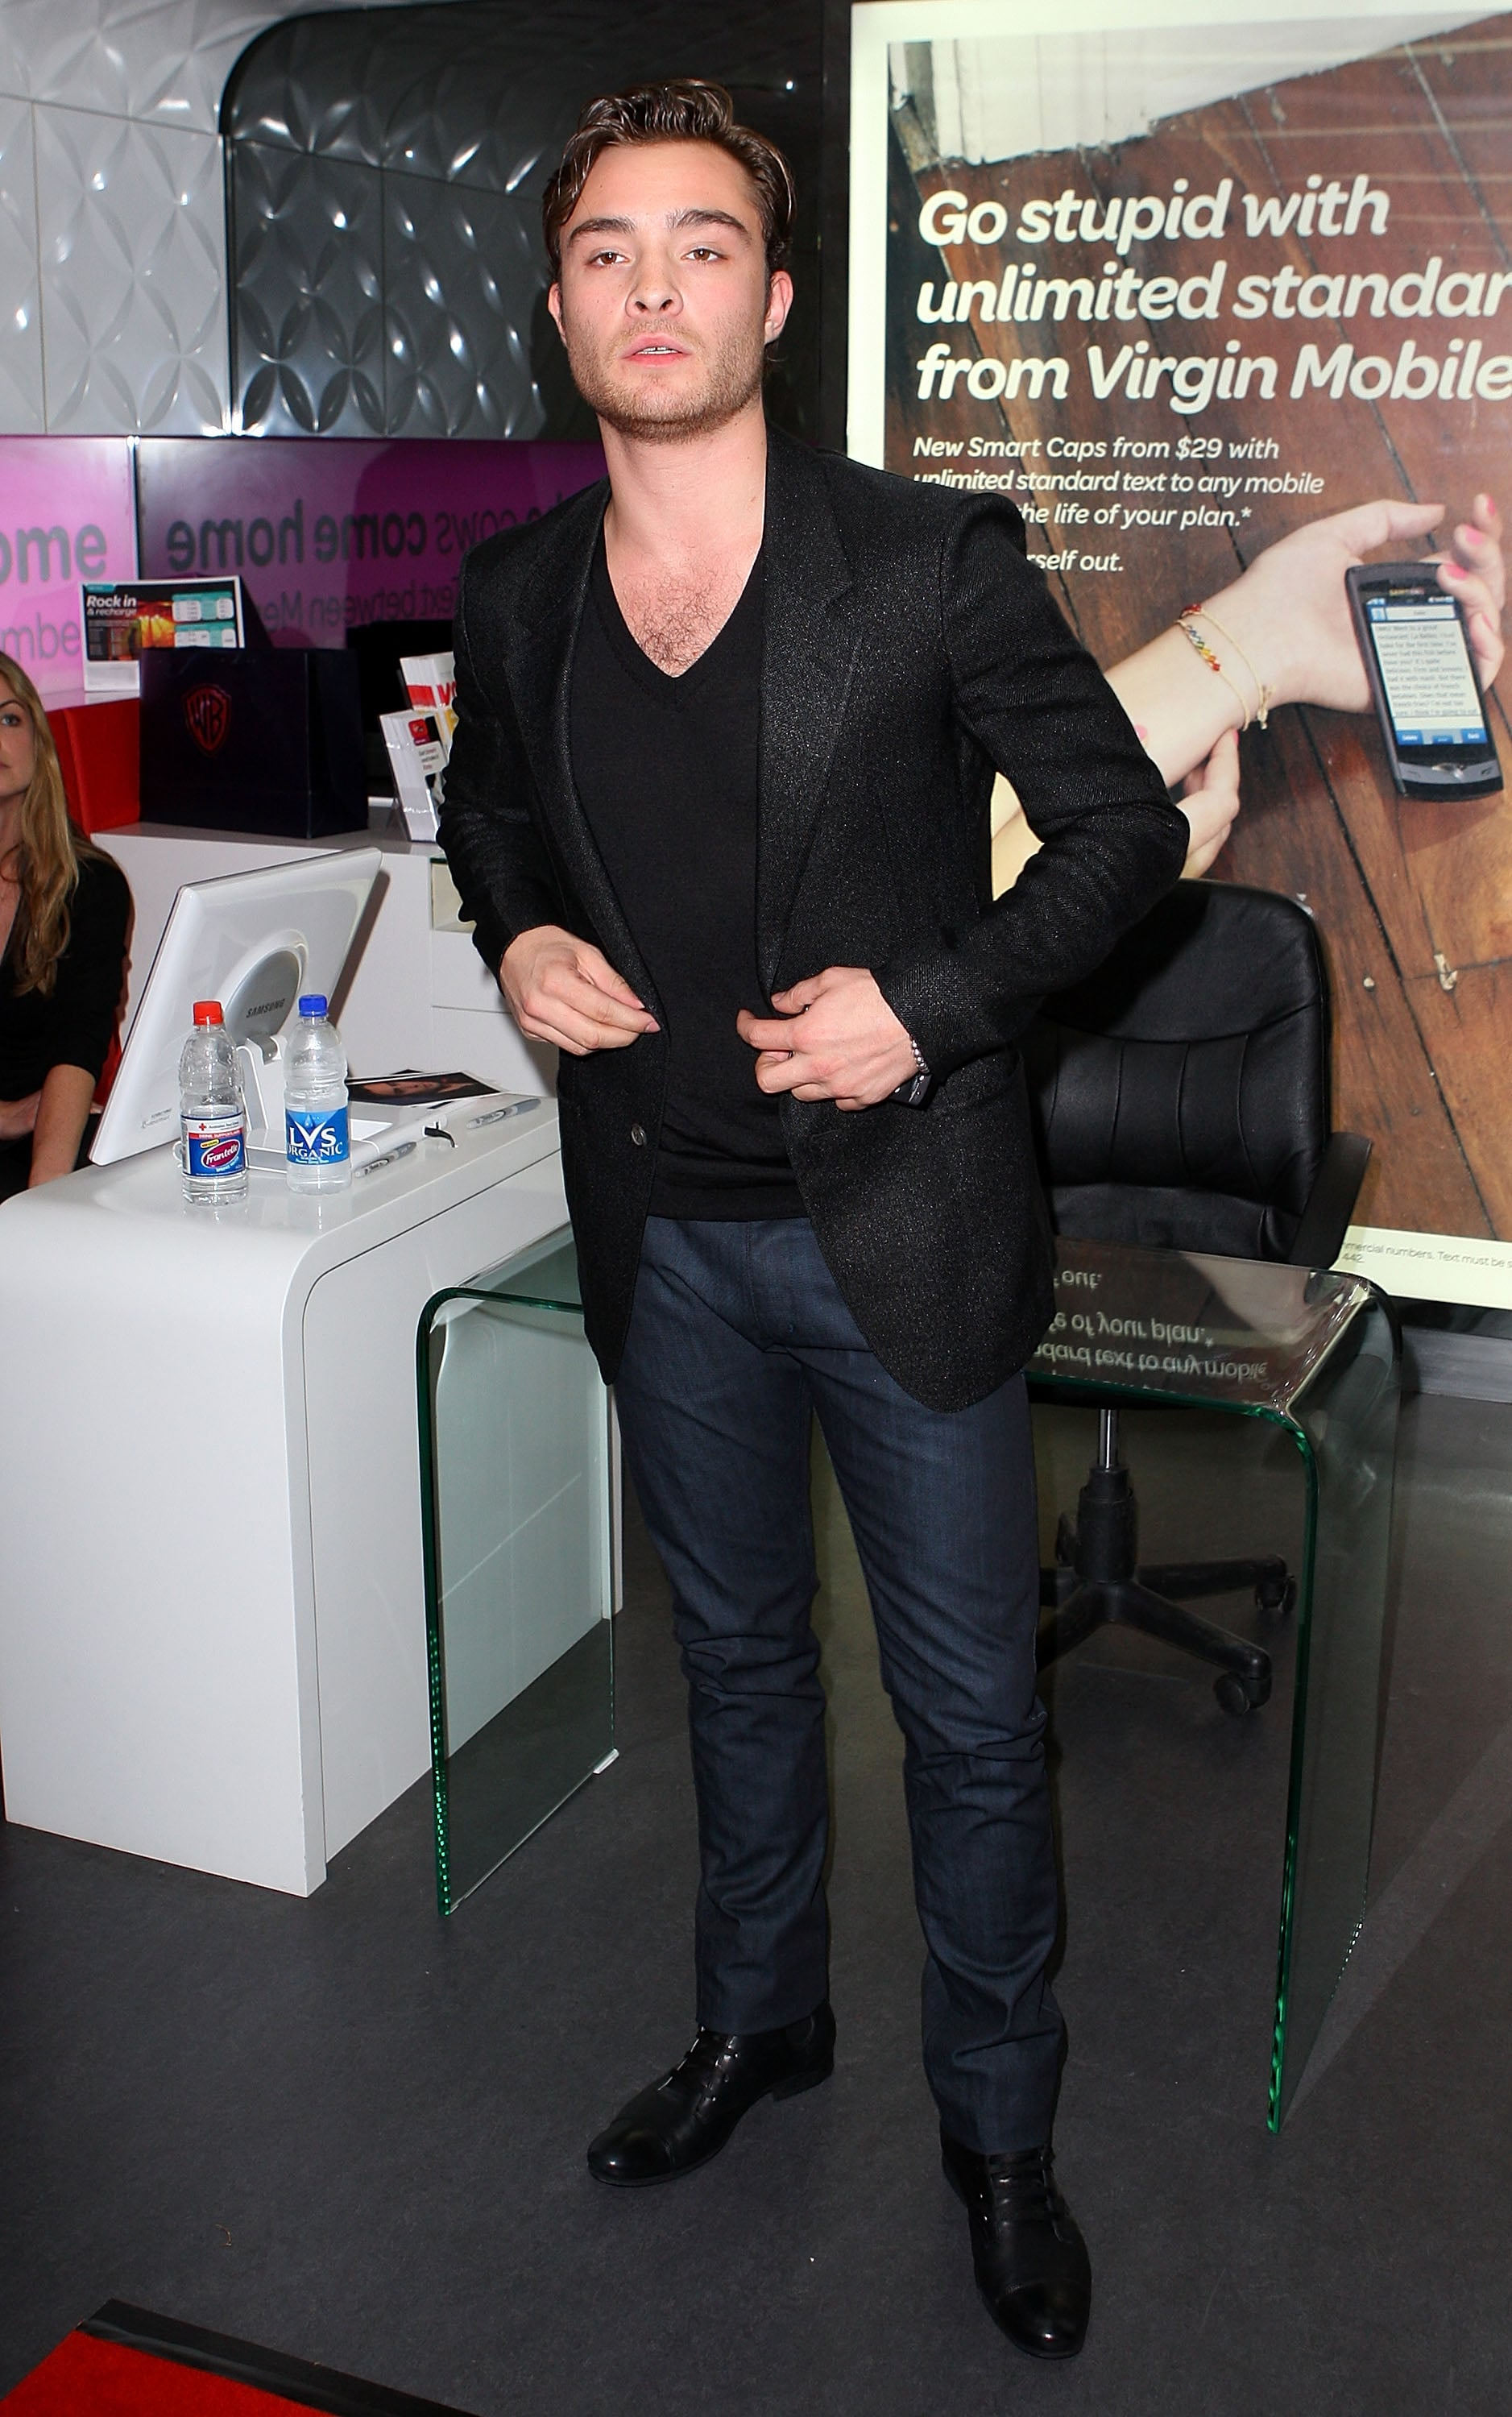 Gossip Girl star Ed Westwick mobbed by fans at Virgin Mobile event in